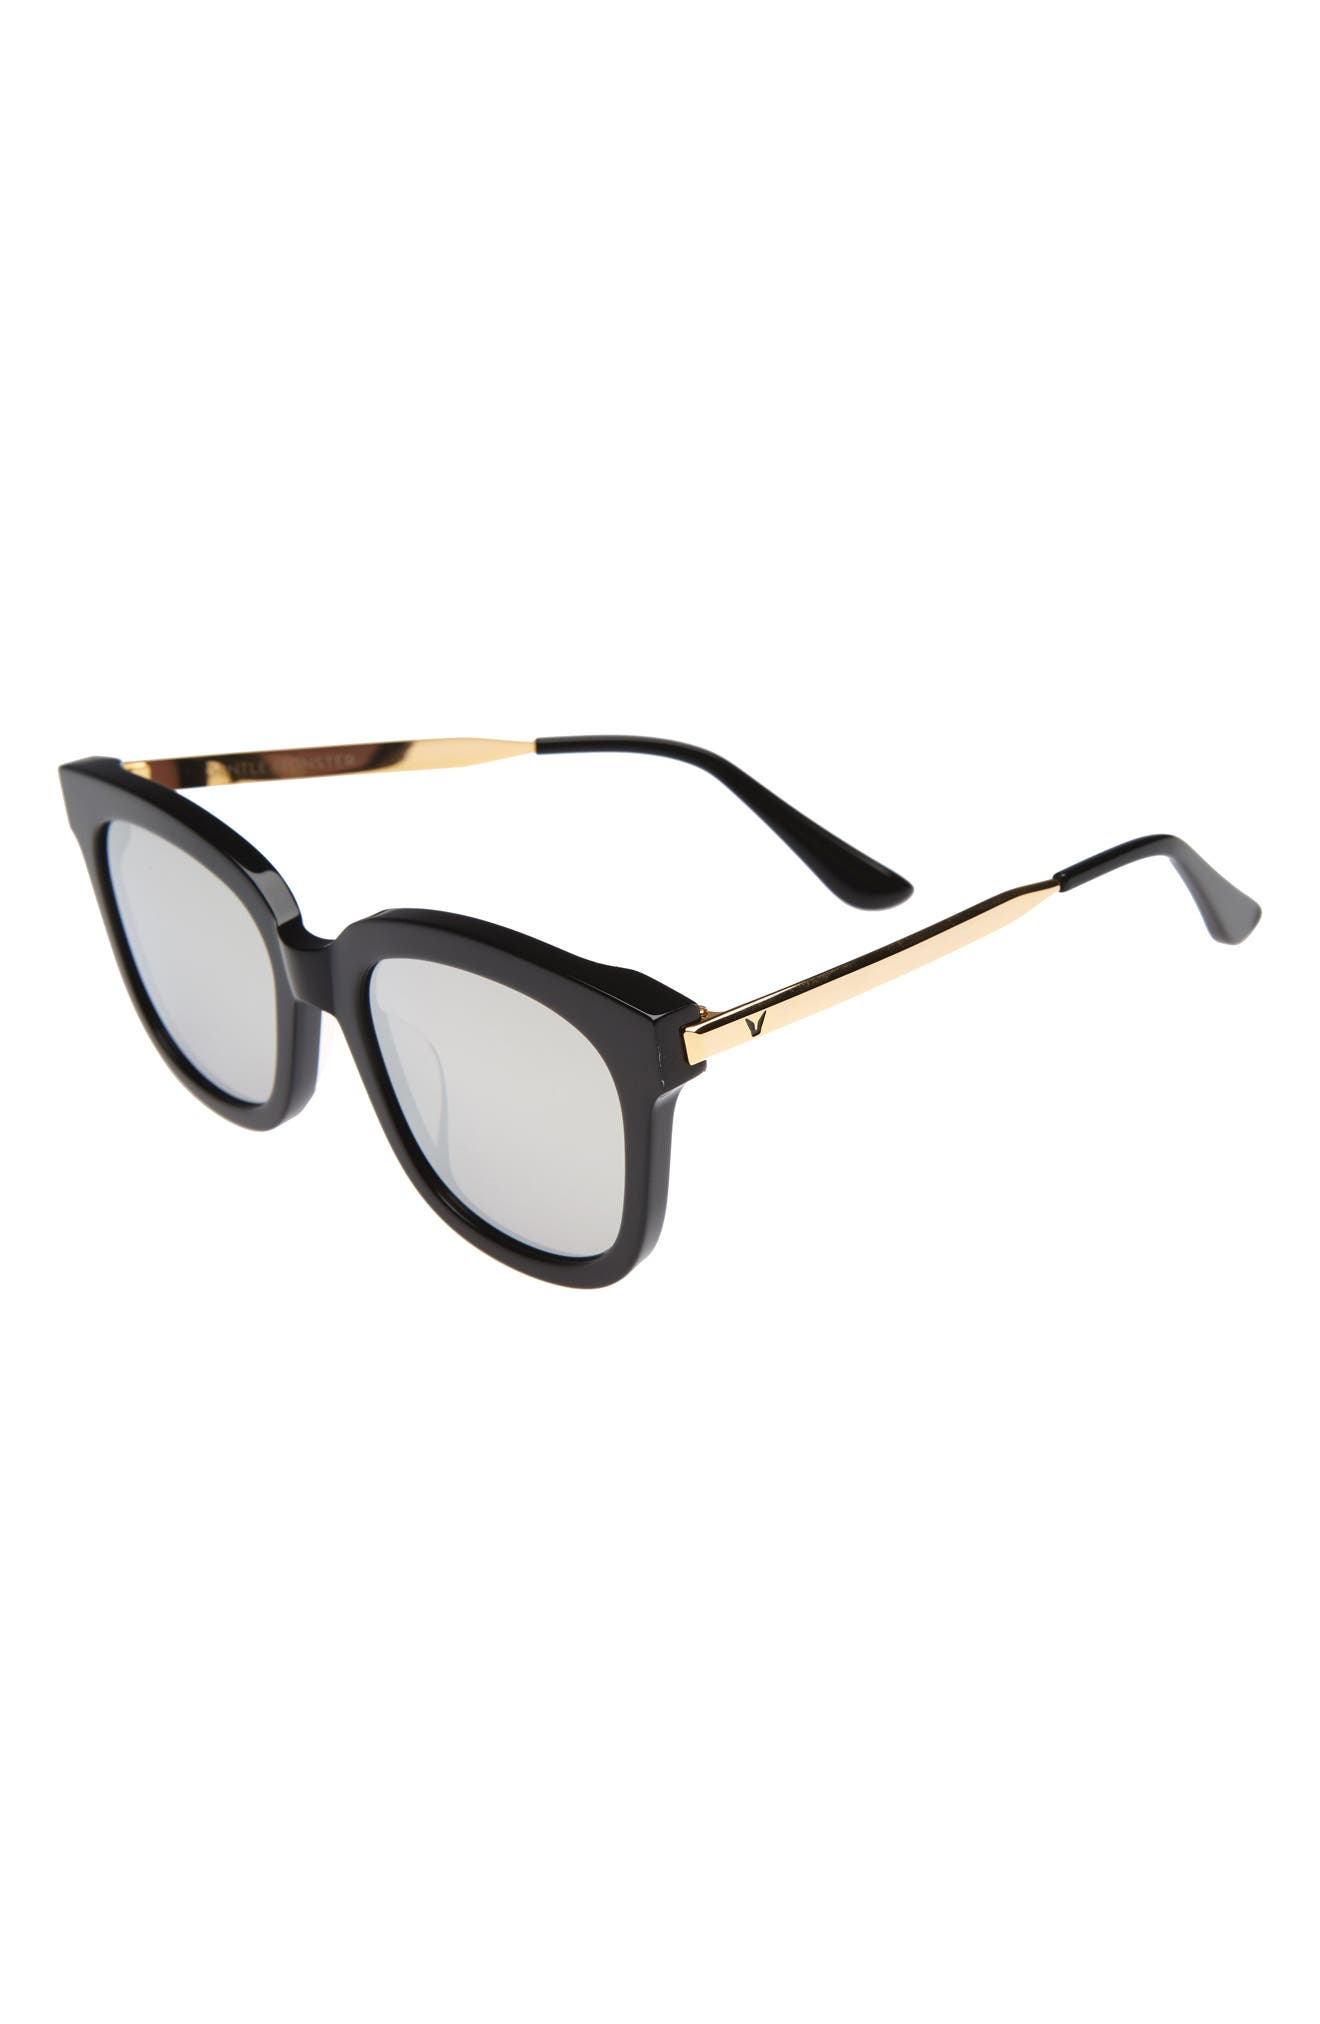 Absente 54mm Sunglasses,                             Alternate thumbnail 14, color,